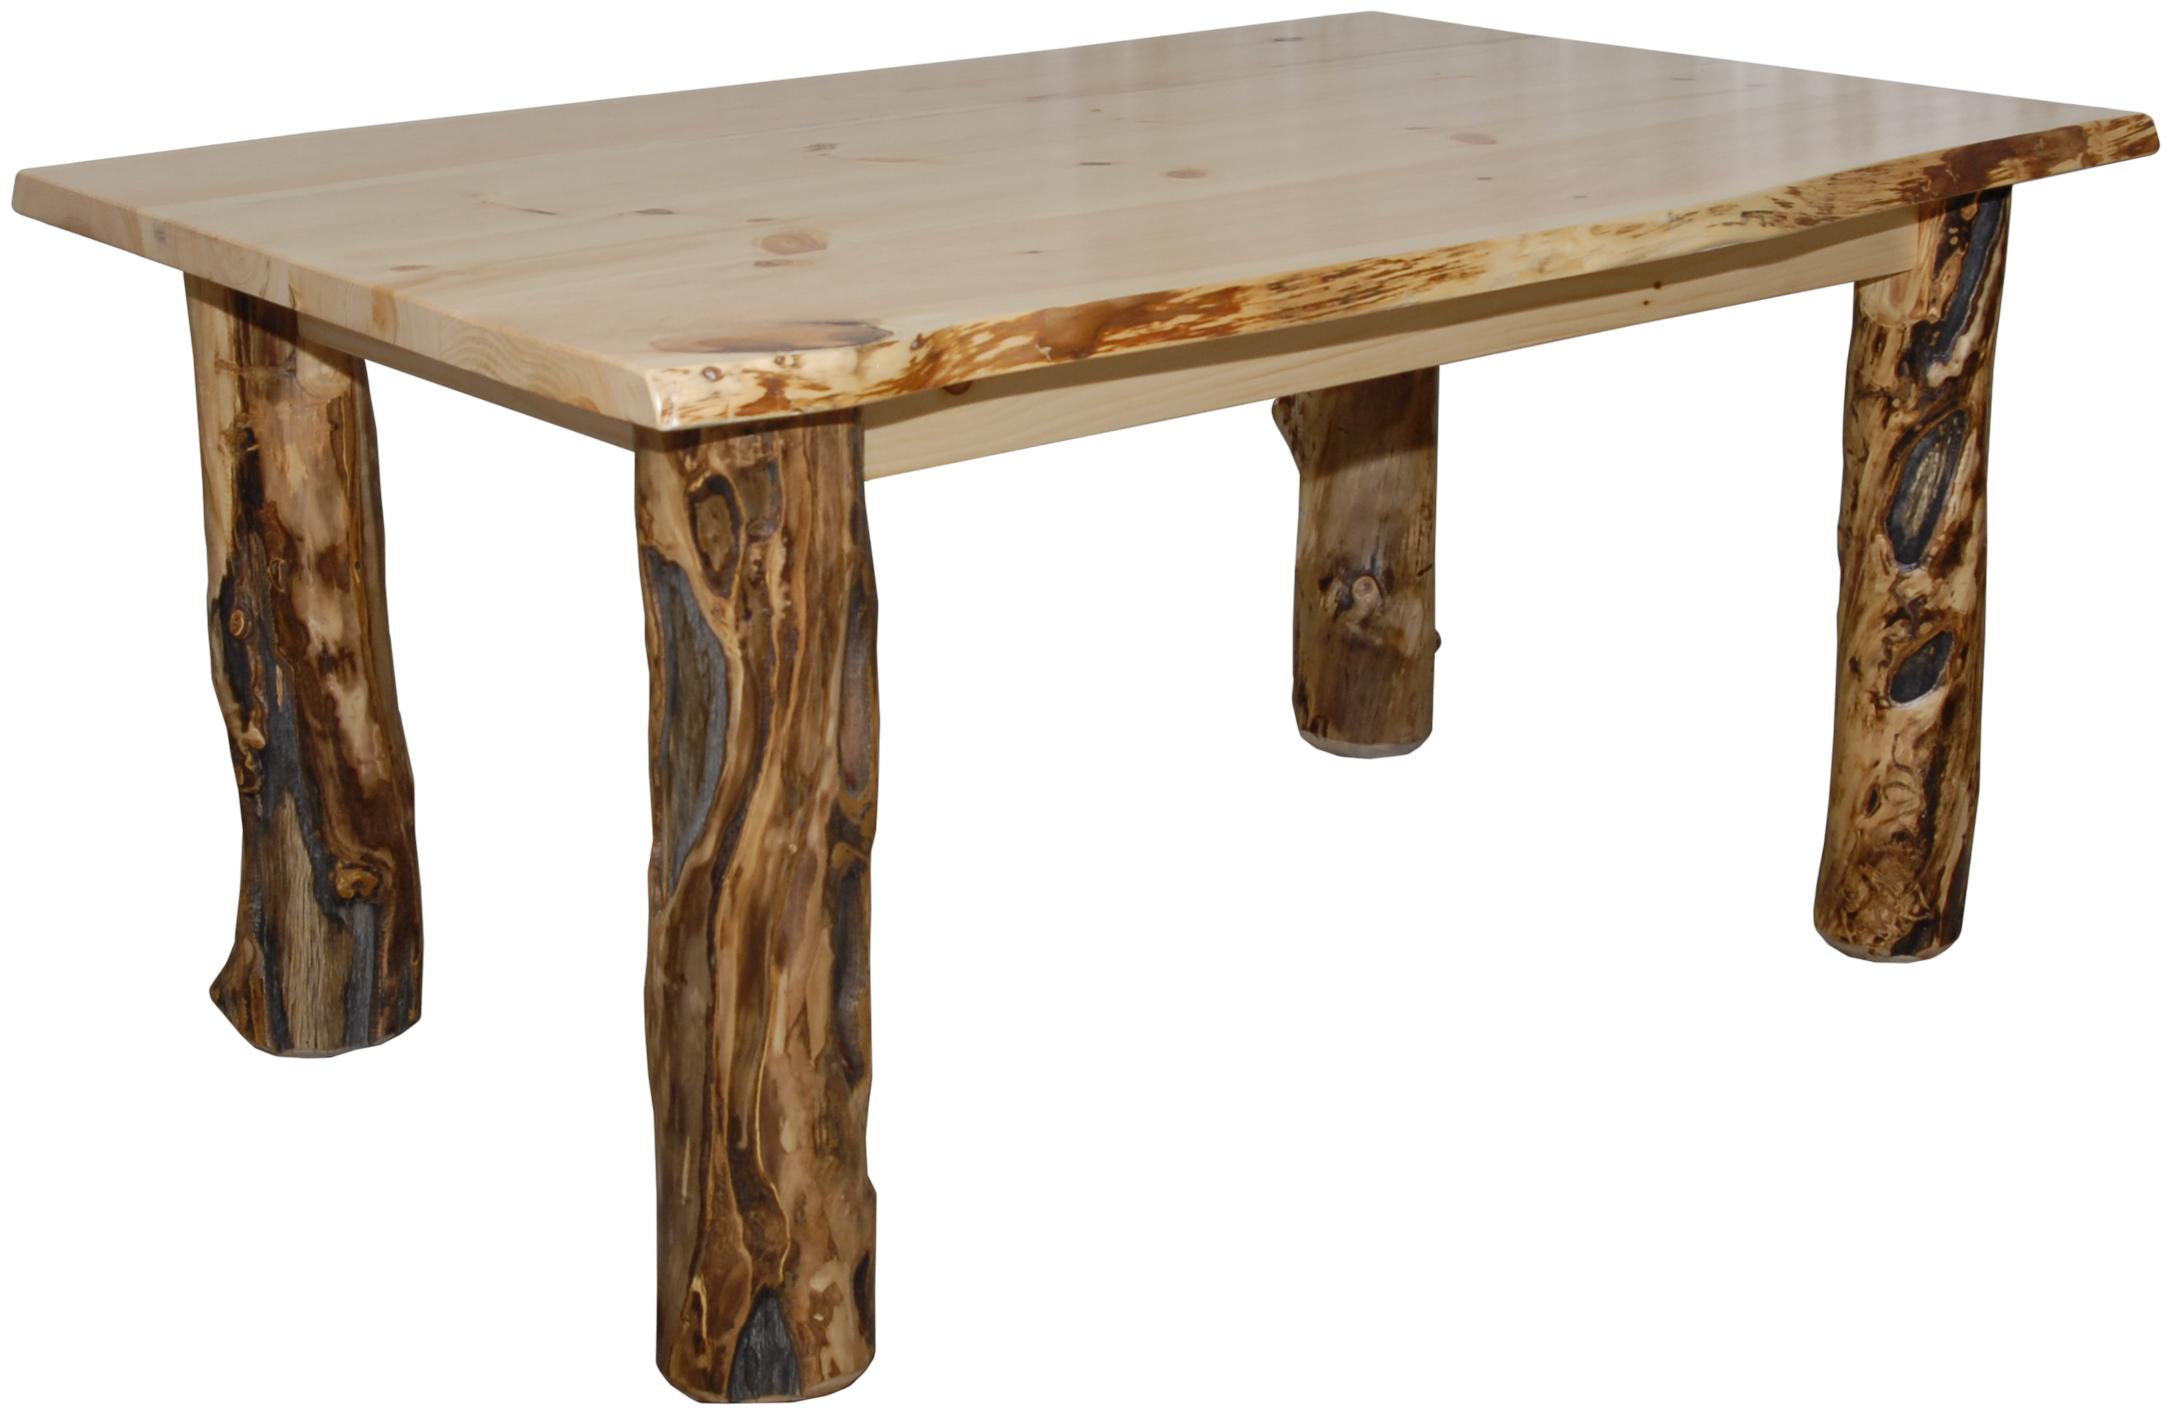 Log Kitchen Tables Rustic aspen log dining table in various sizes workwithnaturefo